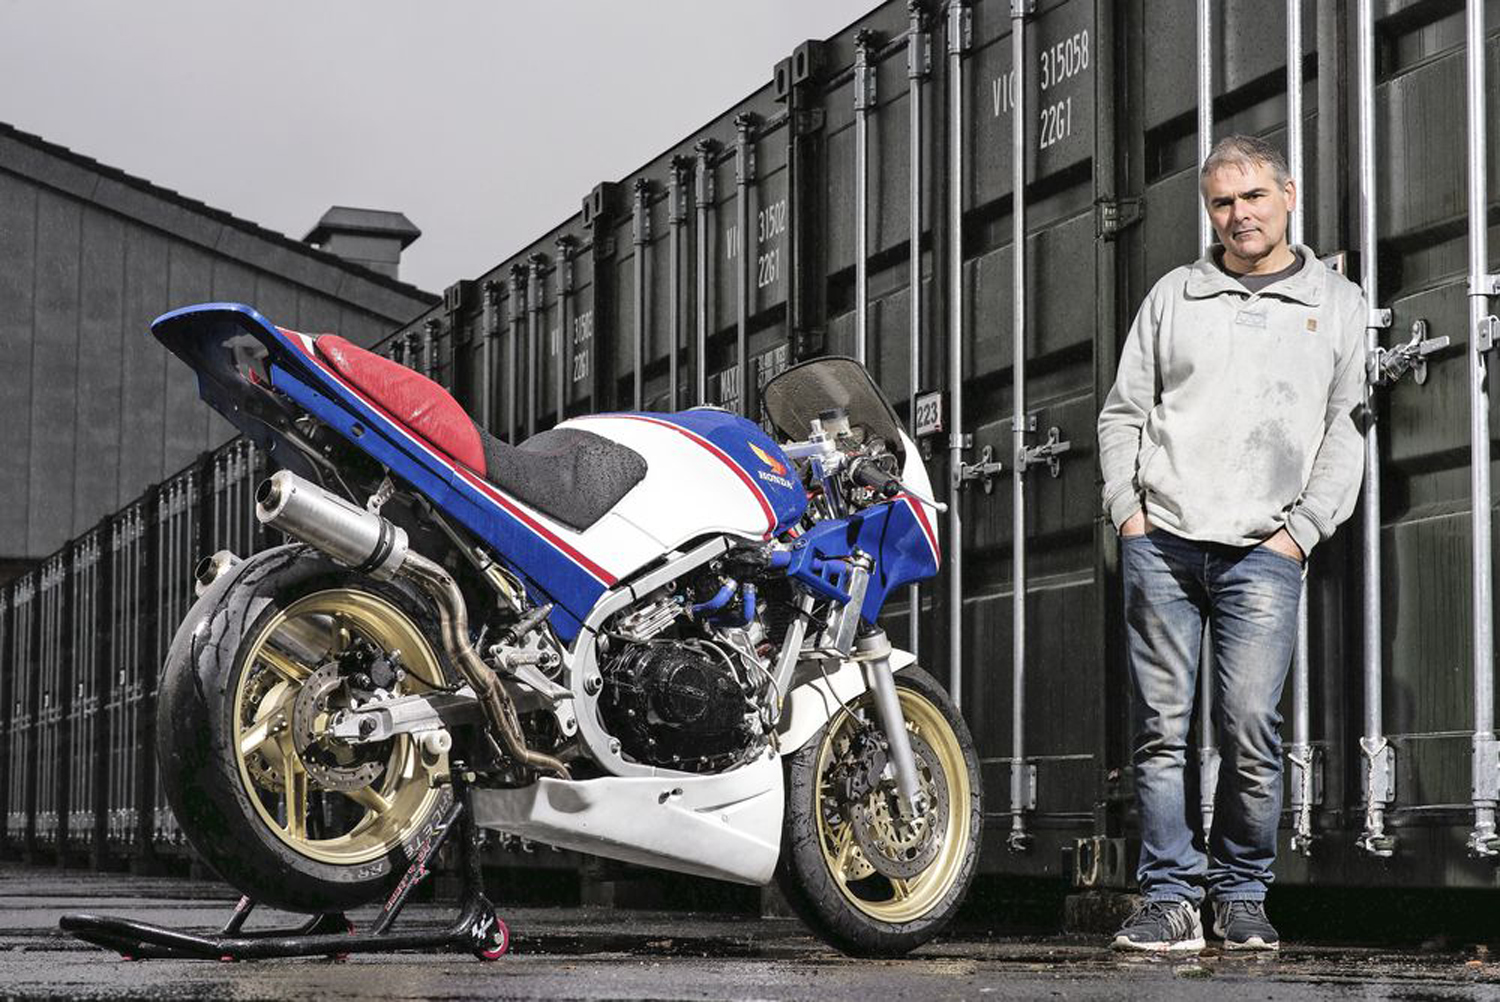 He can hardly contain himself. No wonder. Very nice bike